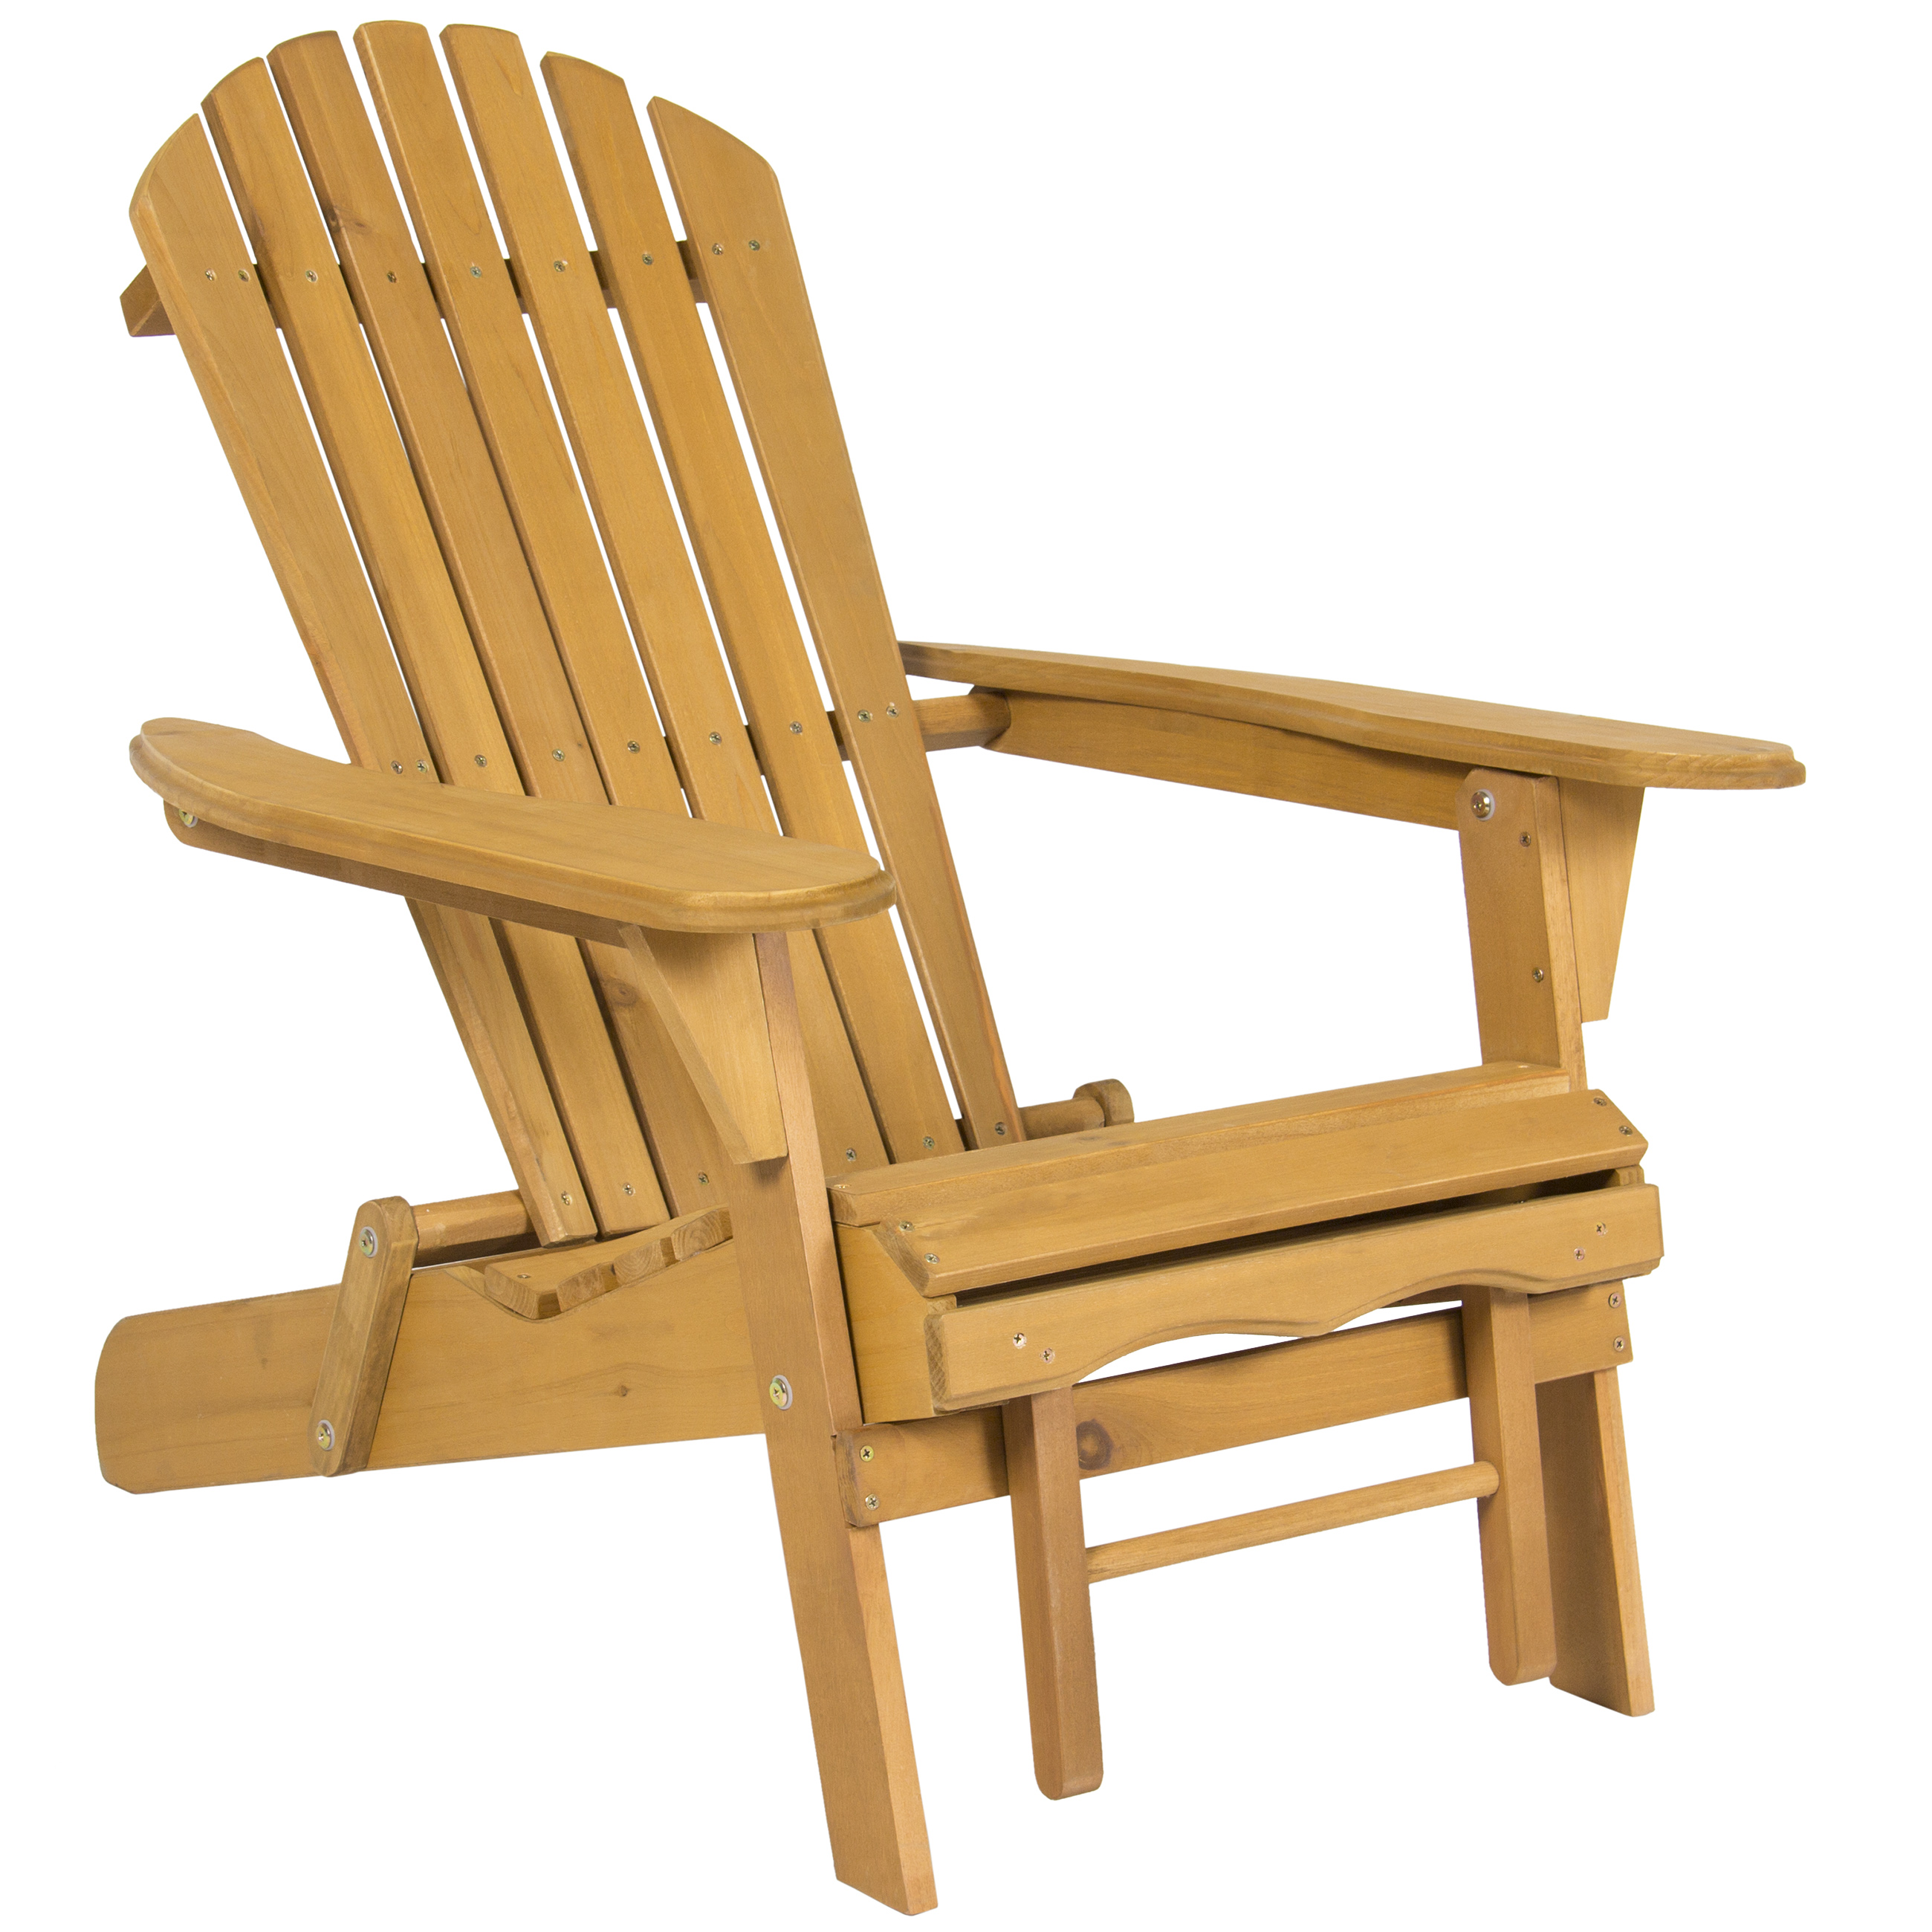 Outdoor Wood Adirondack Chair Foldable w Pull Out Ottoman